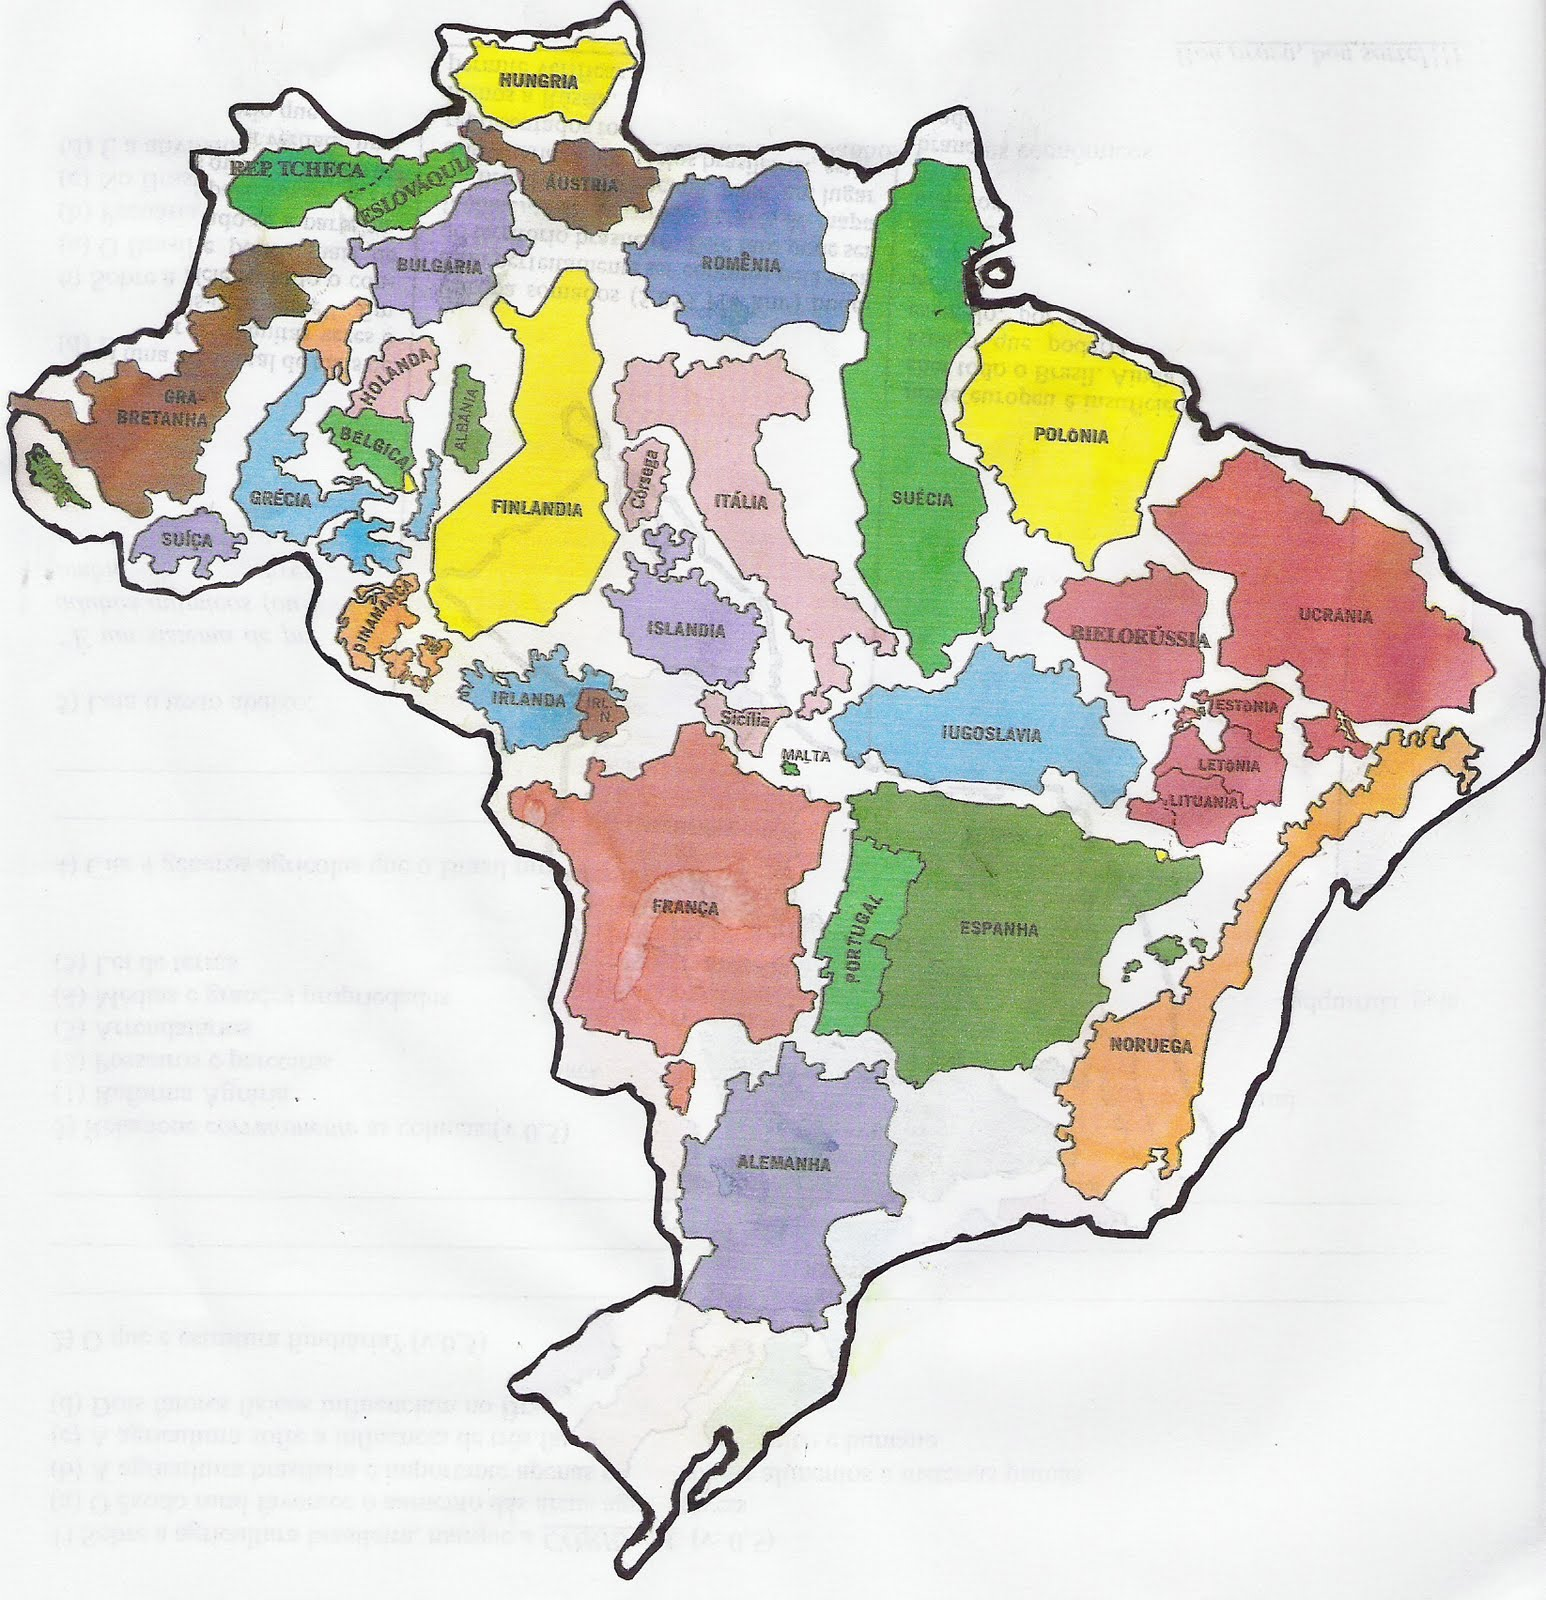 Brazil is not a small country